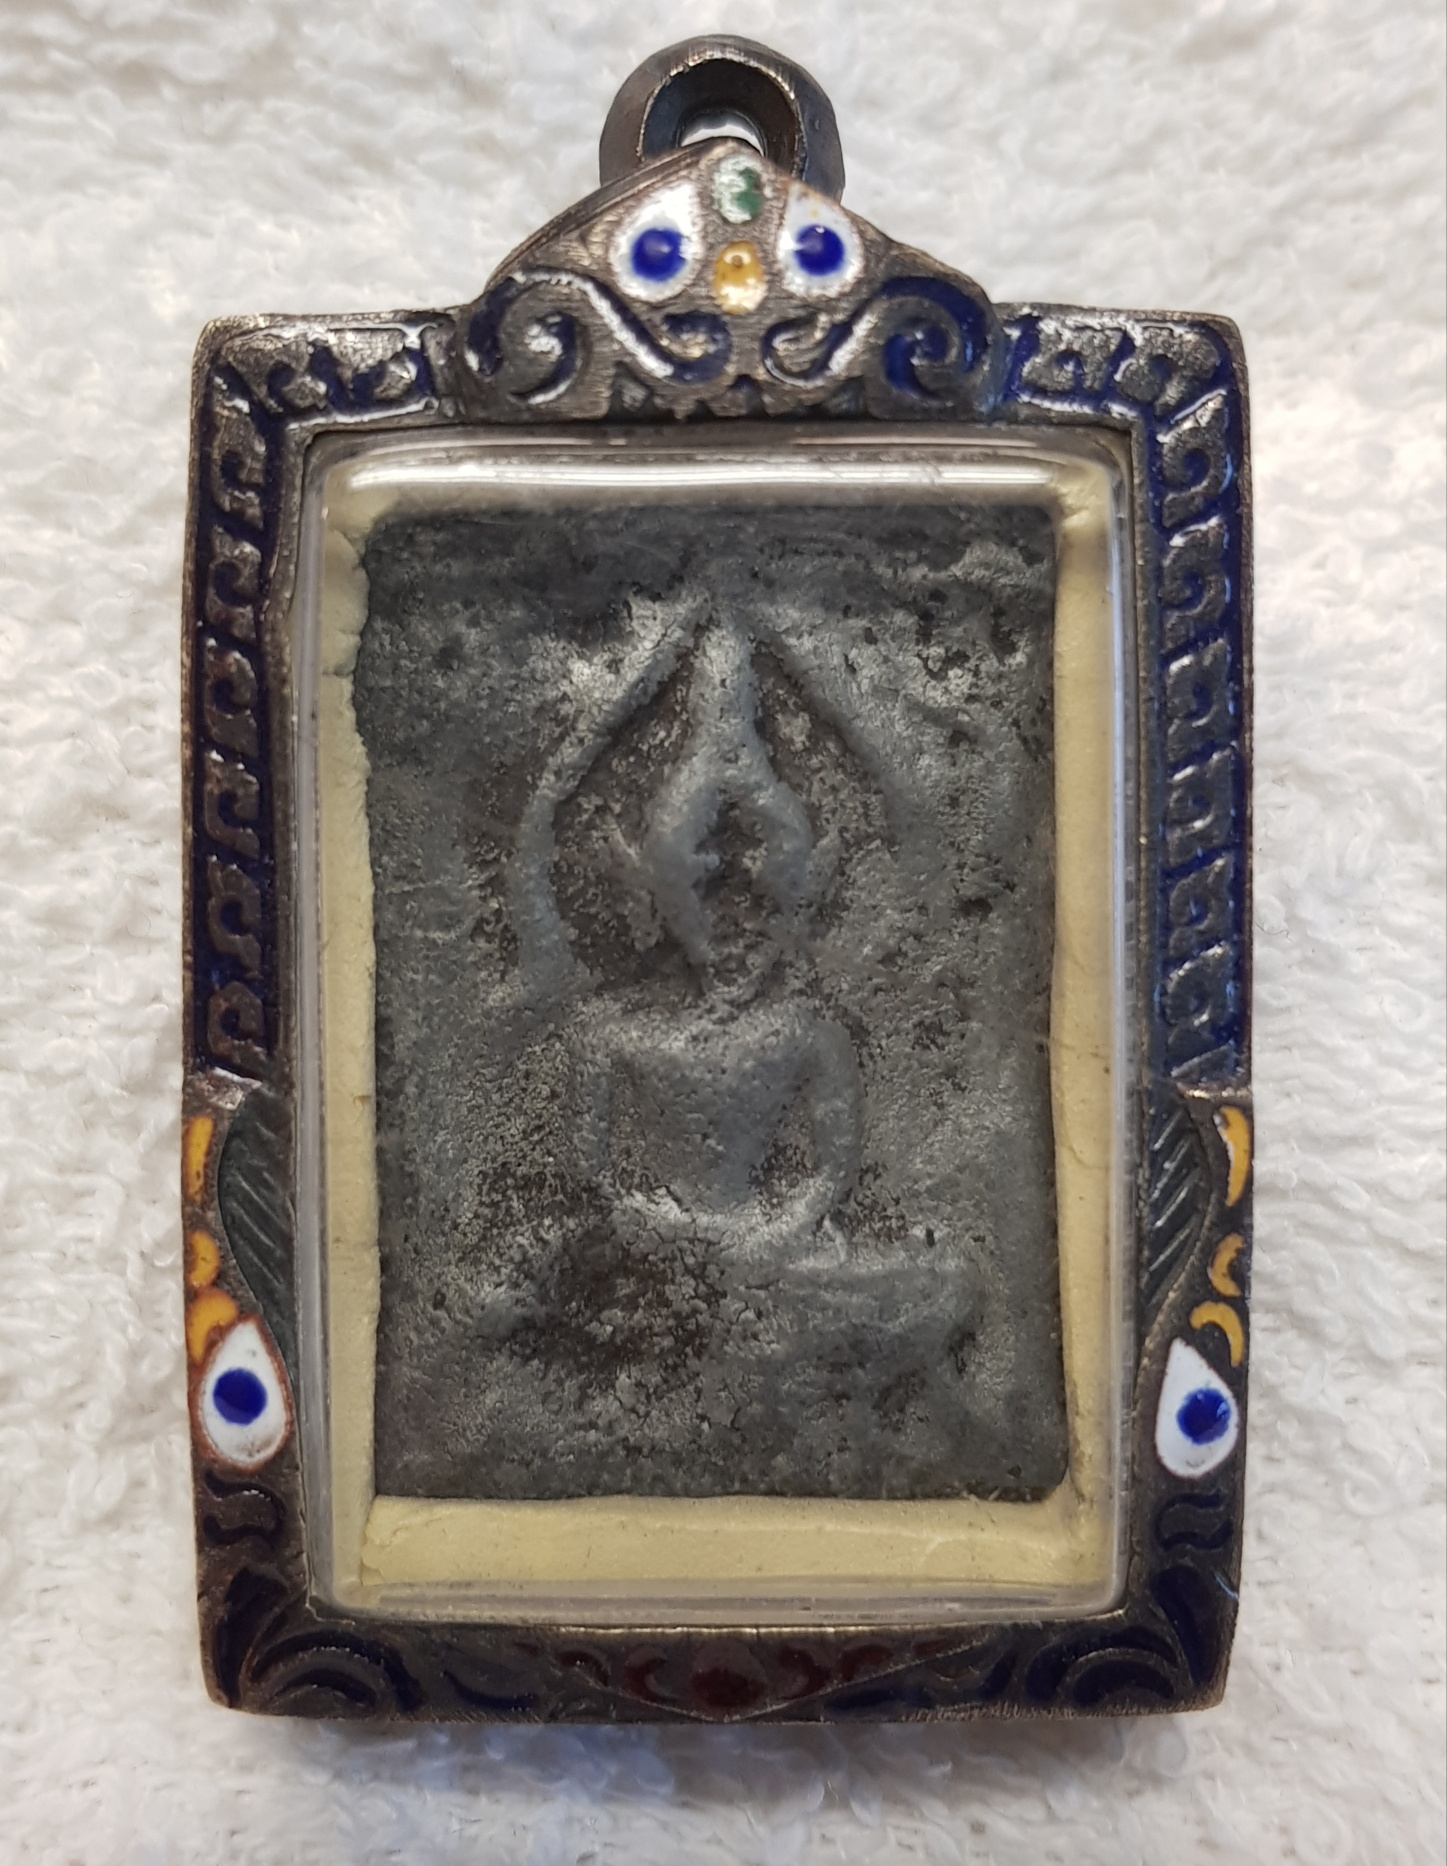 Lp sook. Antique Old amulet.